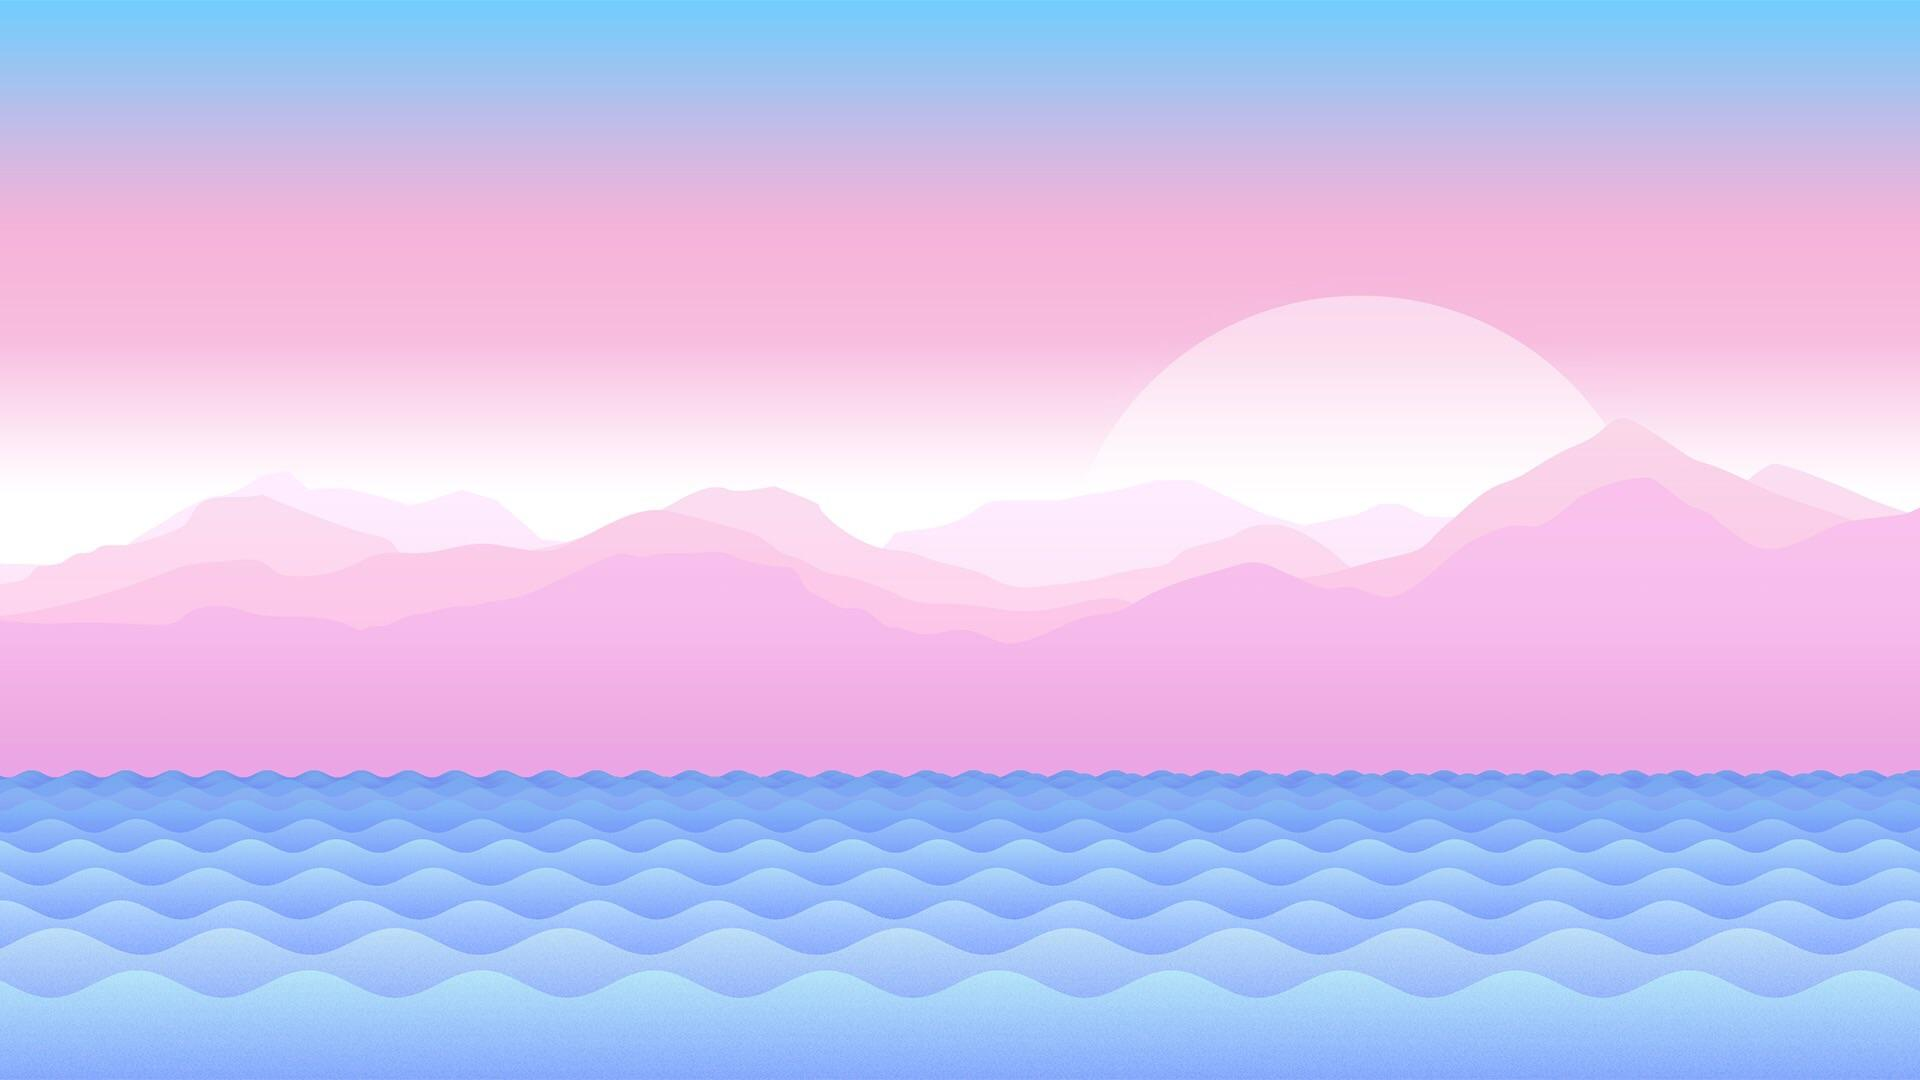 1920x1080 Ok I have this subtle trans flag as my phone background and ...